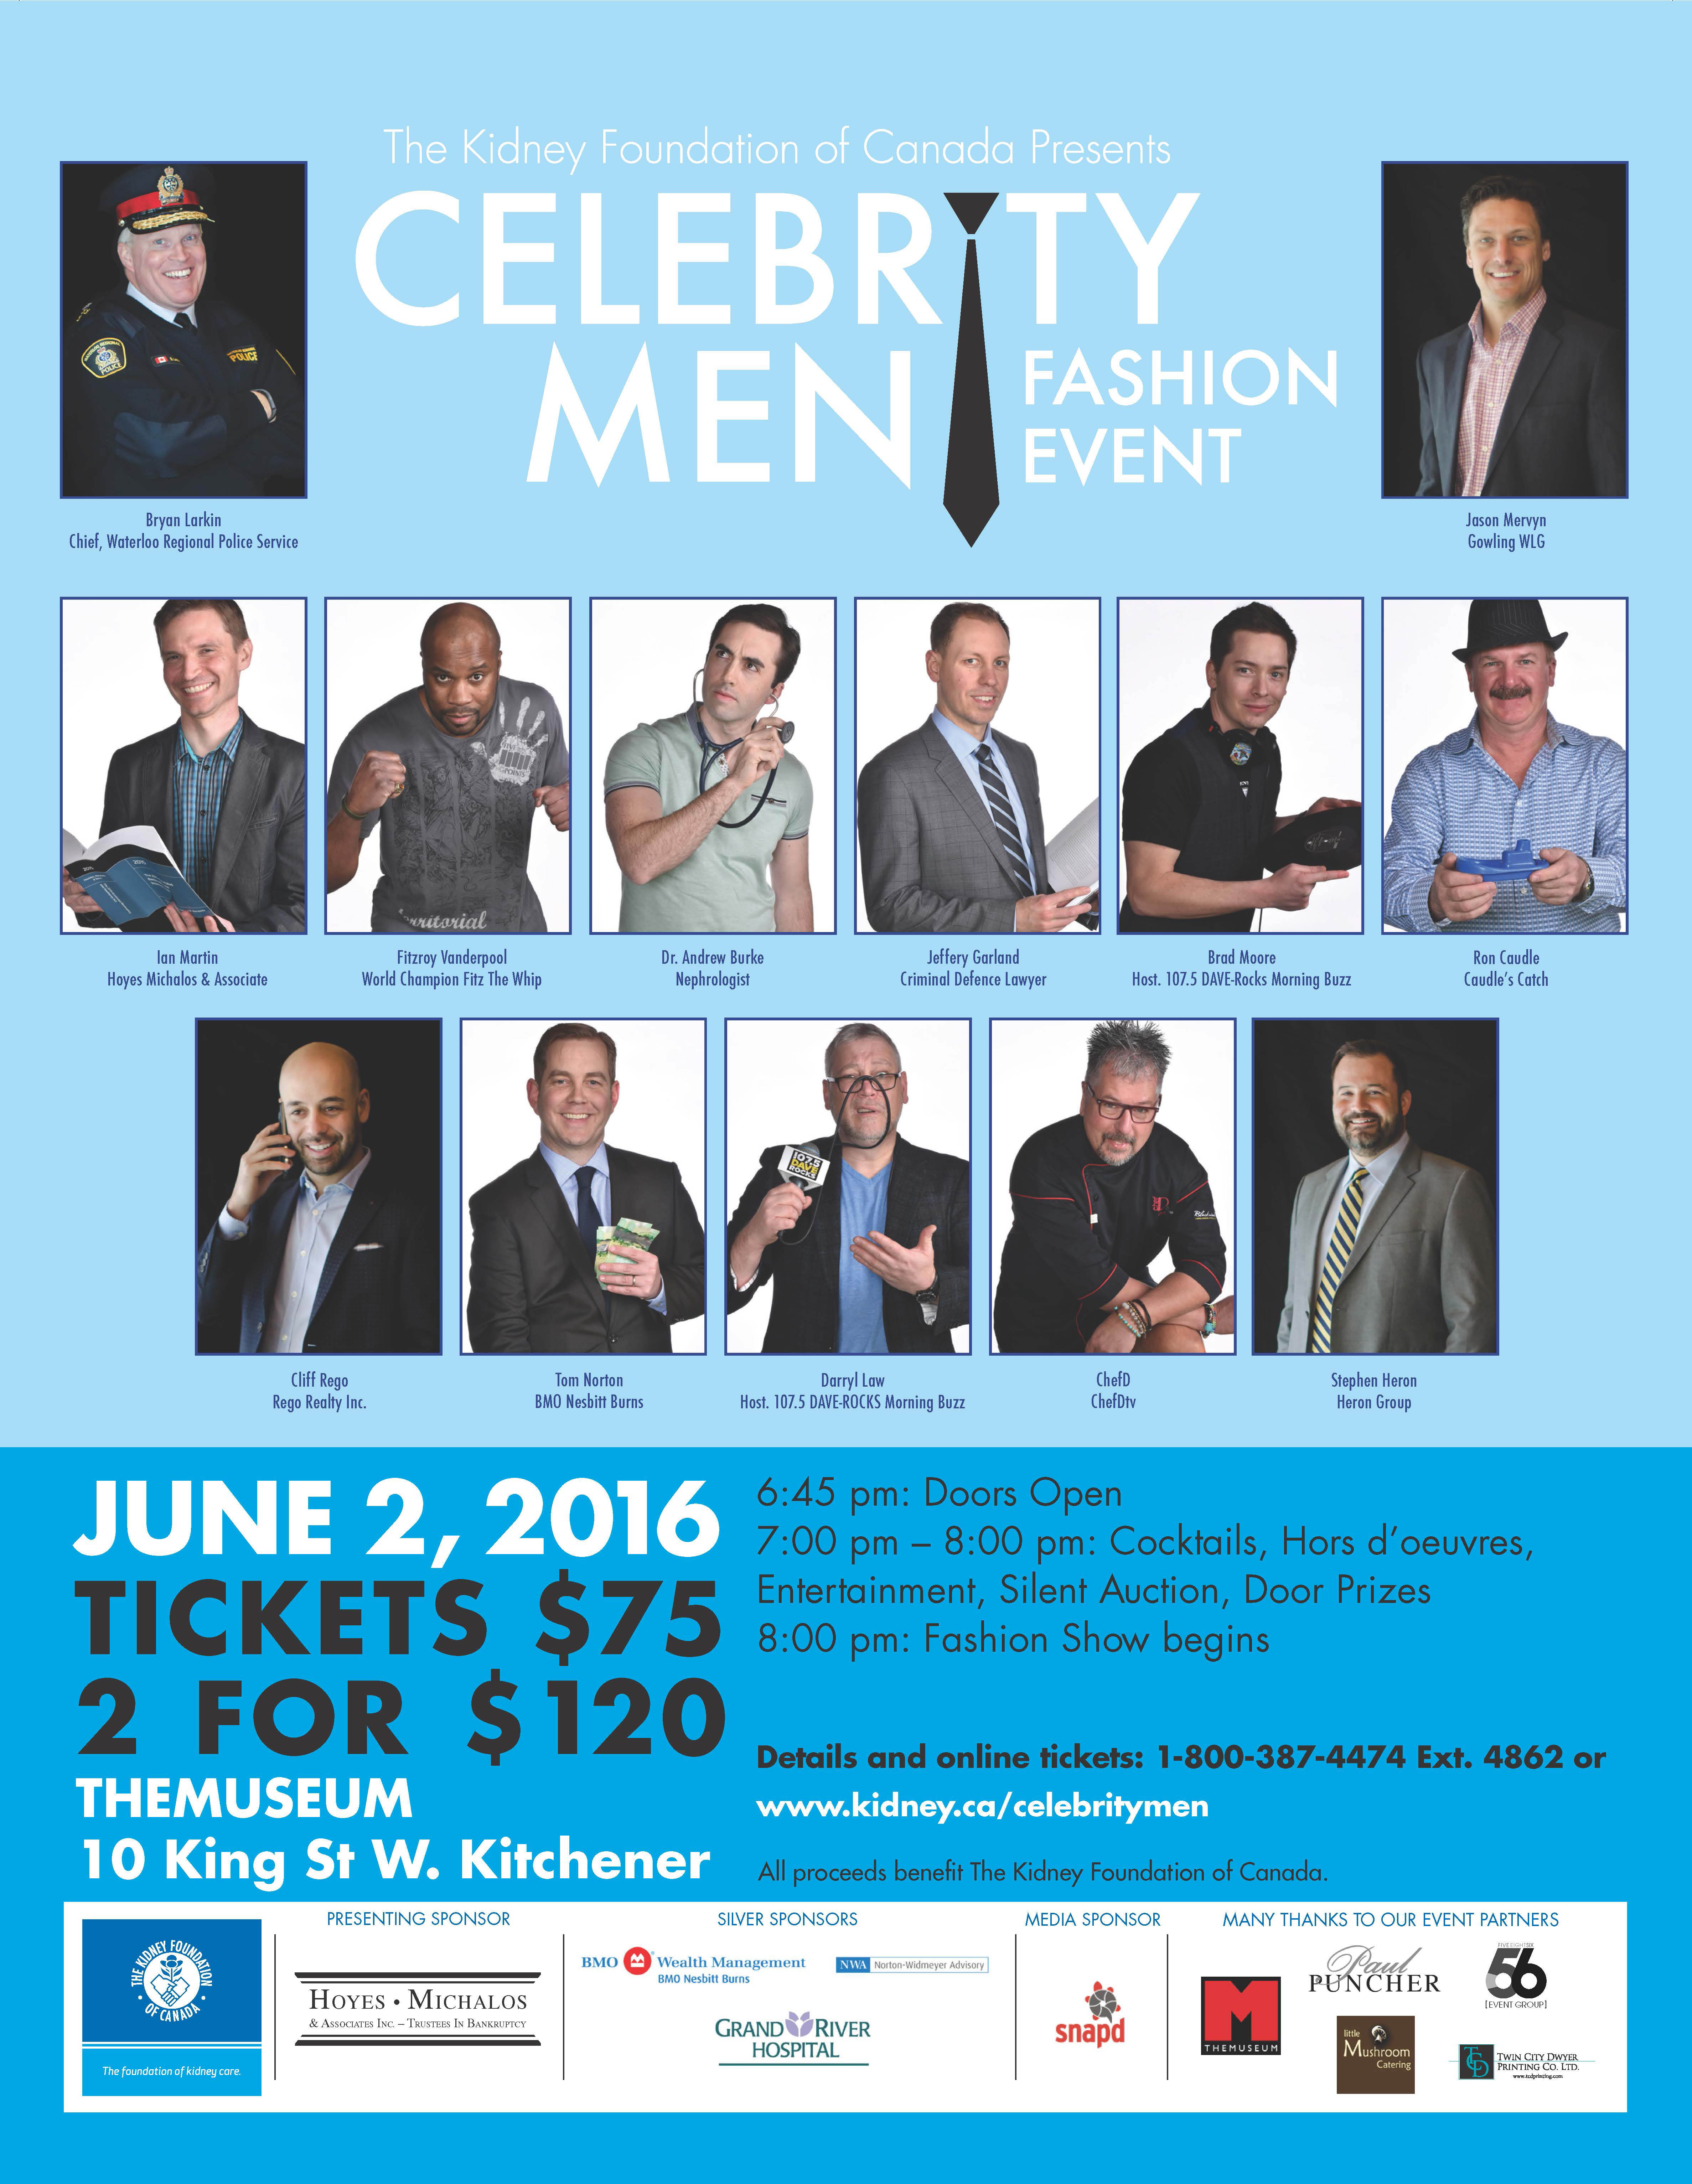 The Kidney Foundation Celebrity Men Fashion Event